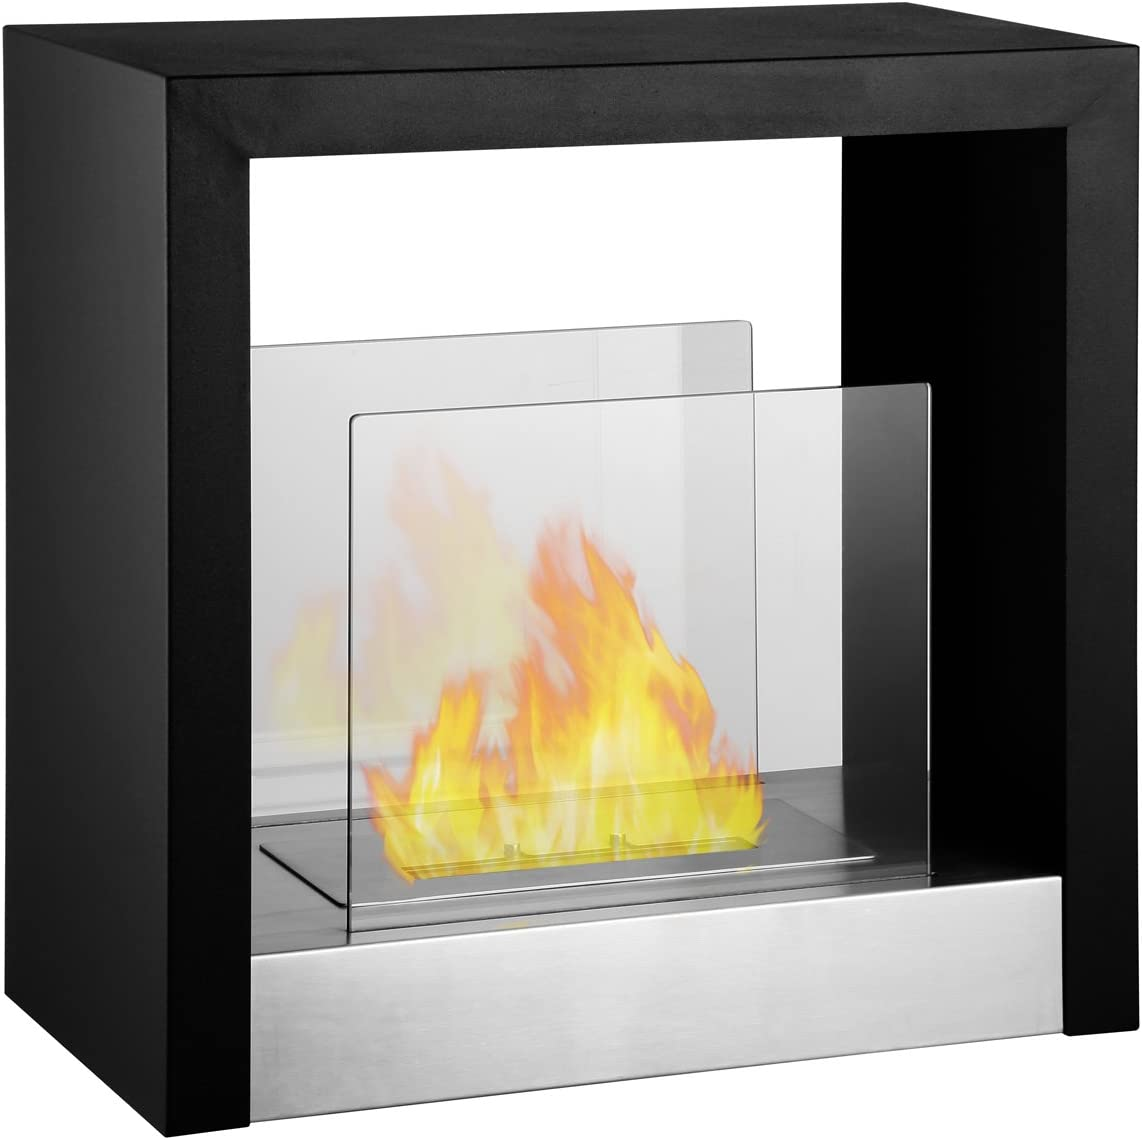 Freestanding Special price for a limited time Ventless Bio Ethanol Fireplace Ignis Max 82% OFF S - Tectum